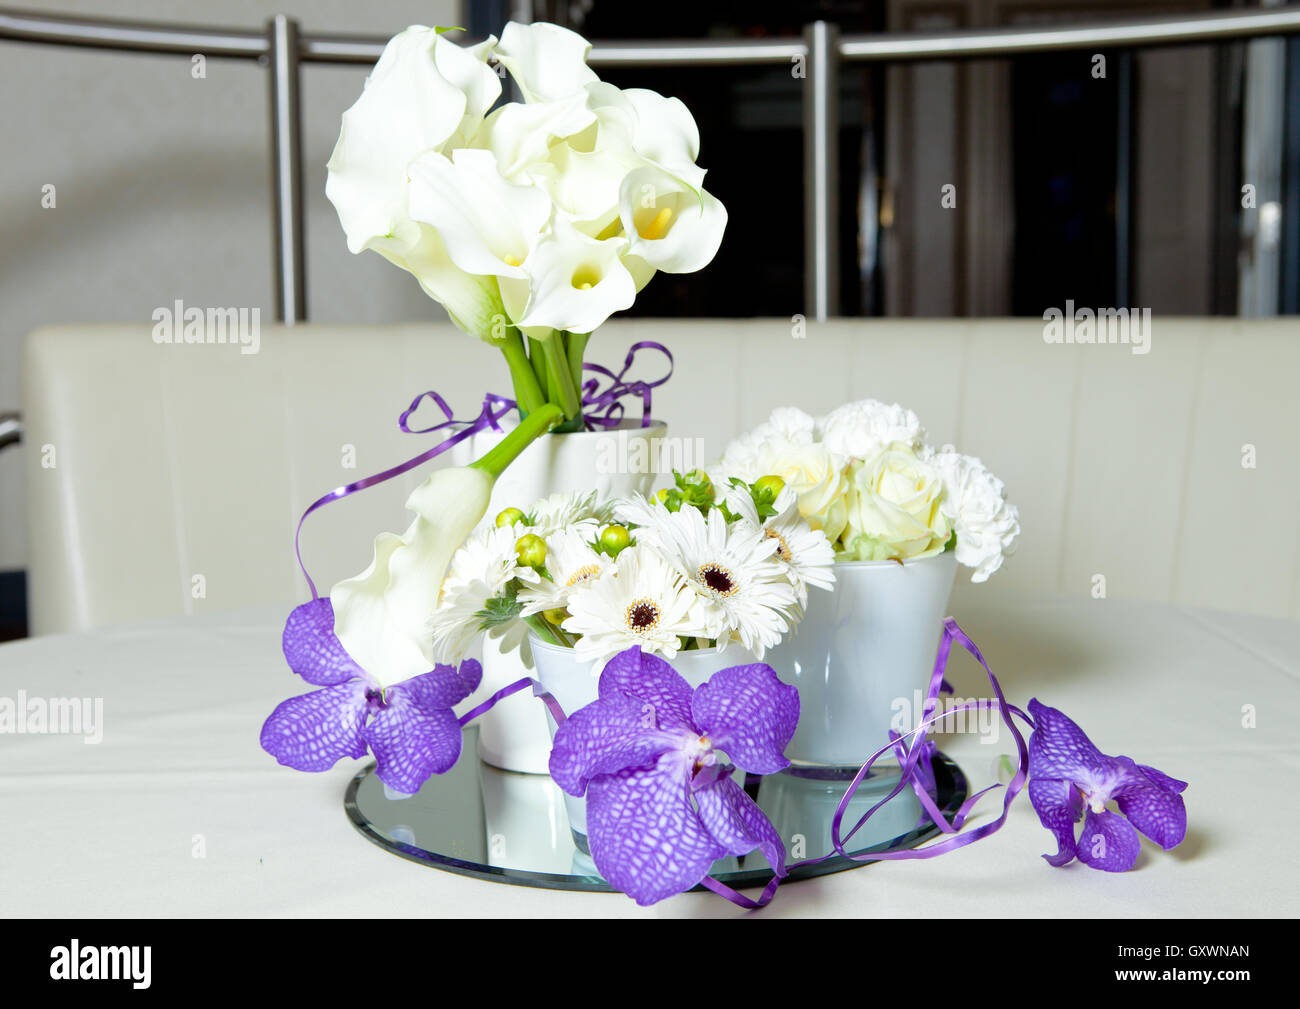 Flowers Bouquet Mix Purple And White On The Table In Restaurant Art